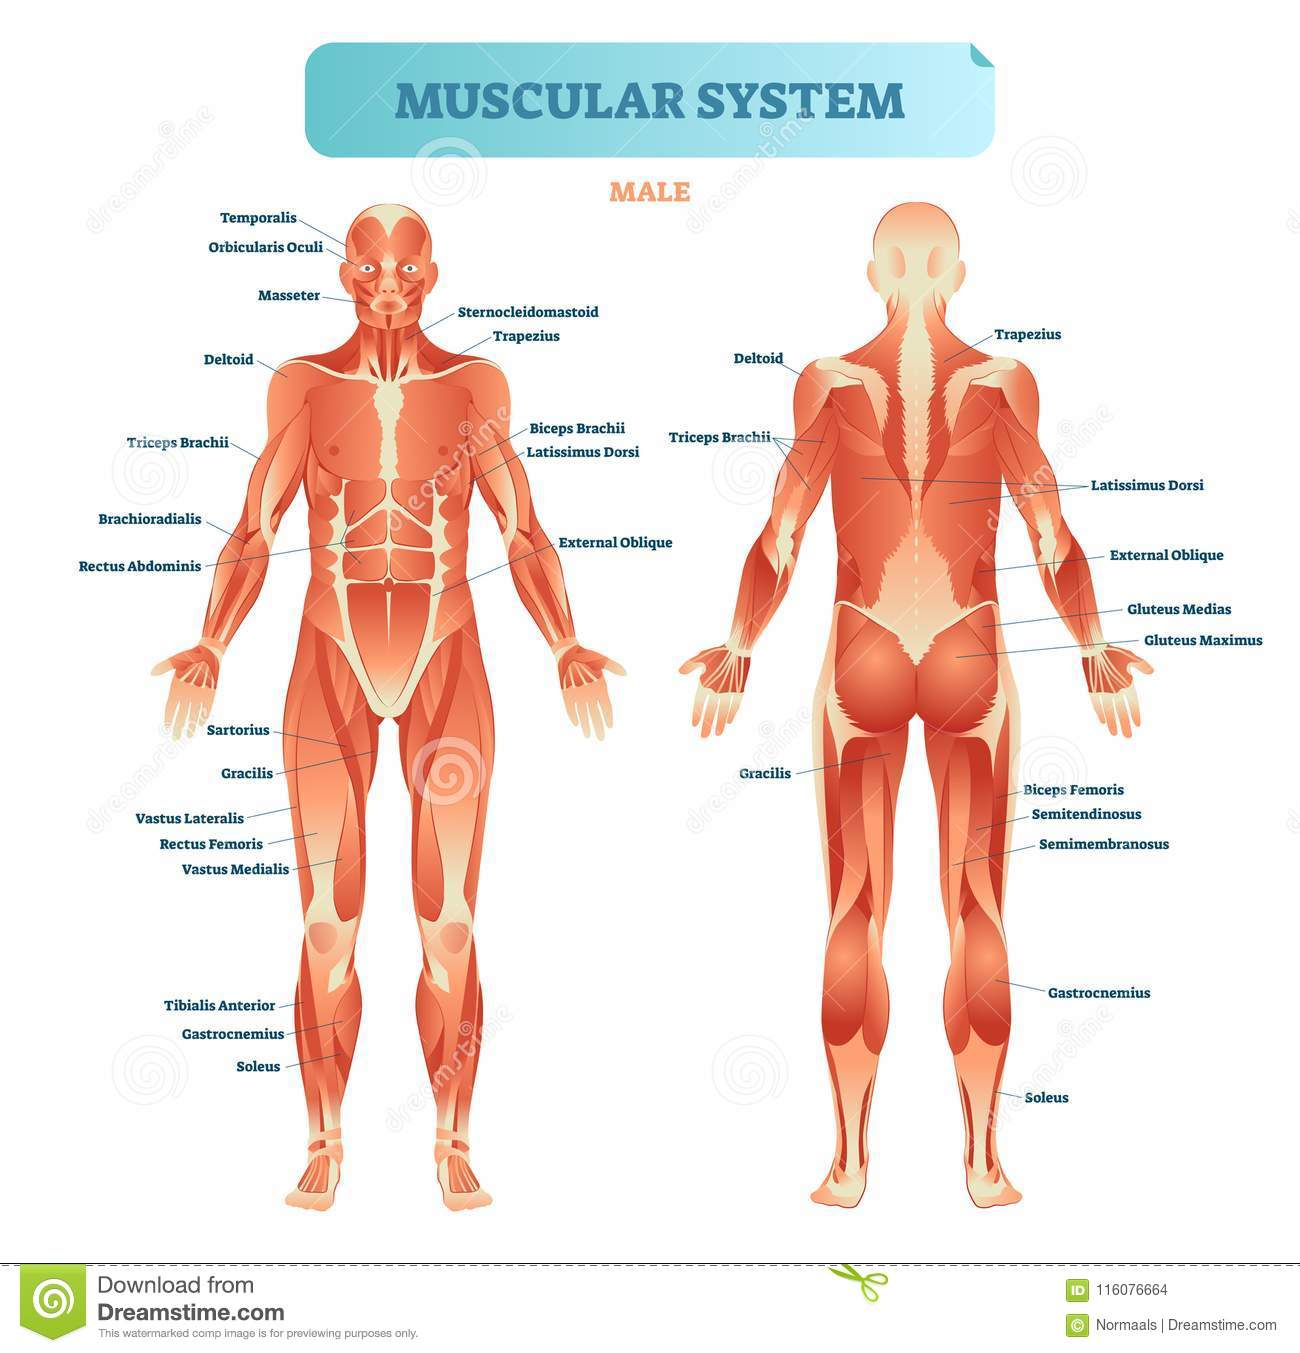 hight resolution of male muscular system full anatomical body diagram with muscle scheme vector illustration educational poster